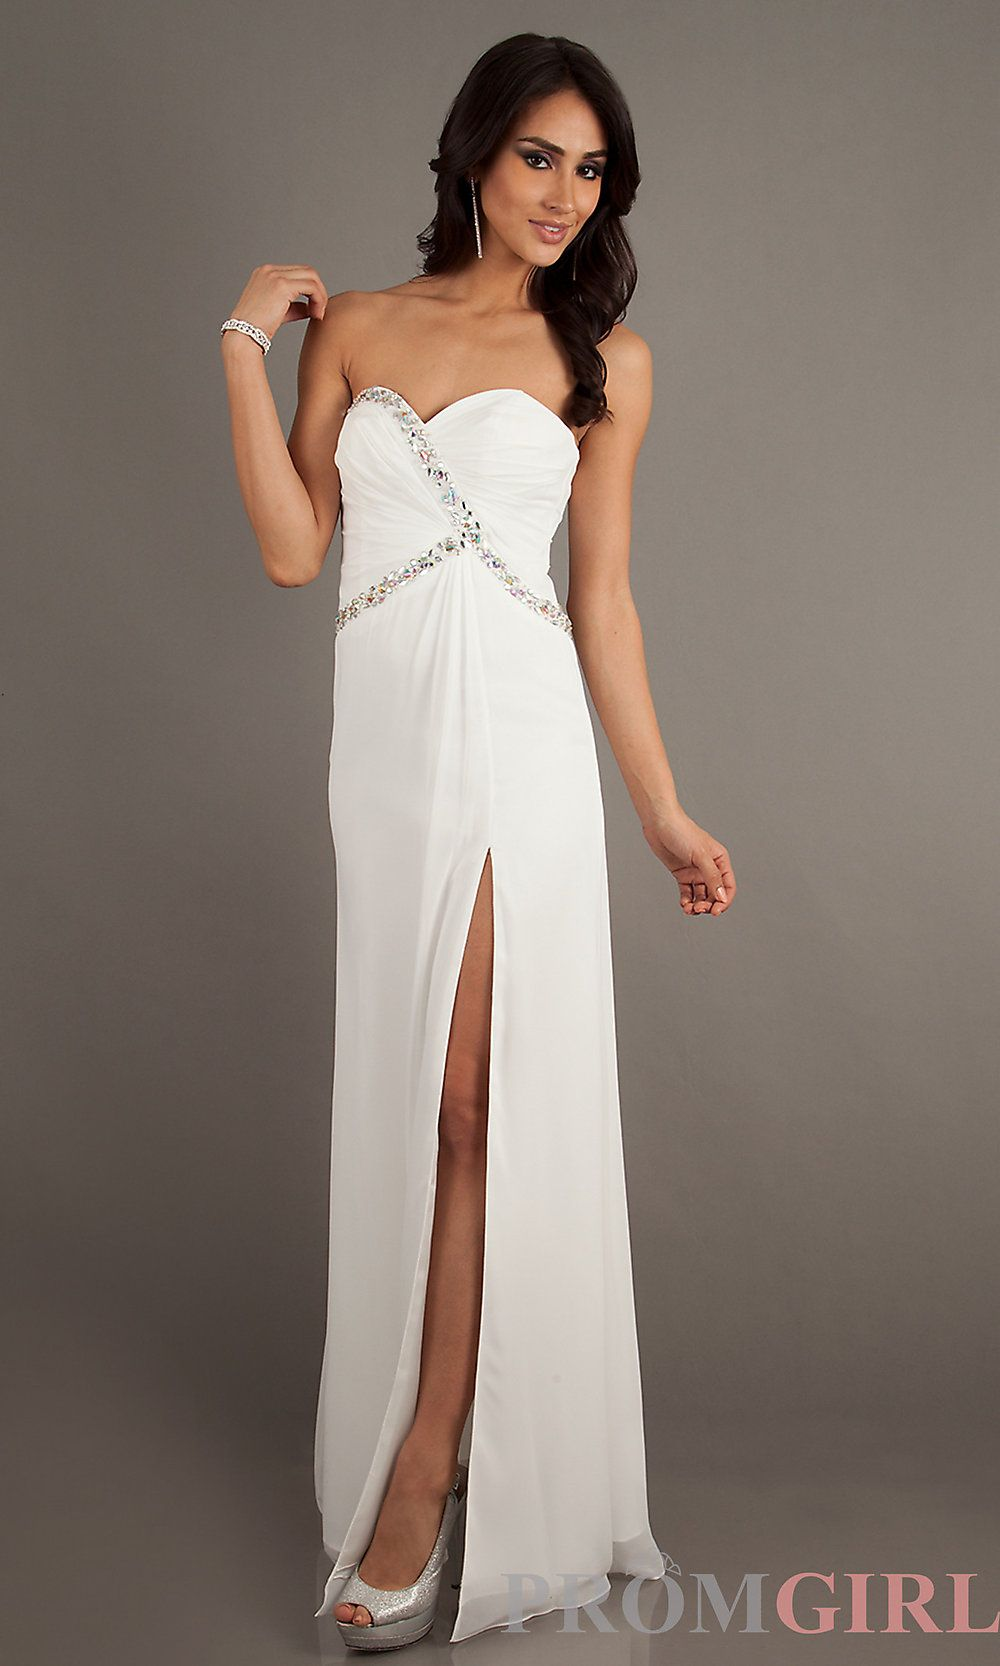 Celebrity Prom Dresses, Sexy Evening Gowns - PromGirl: DJ